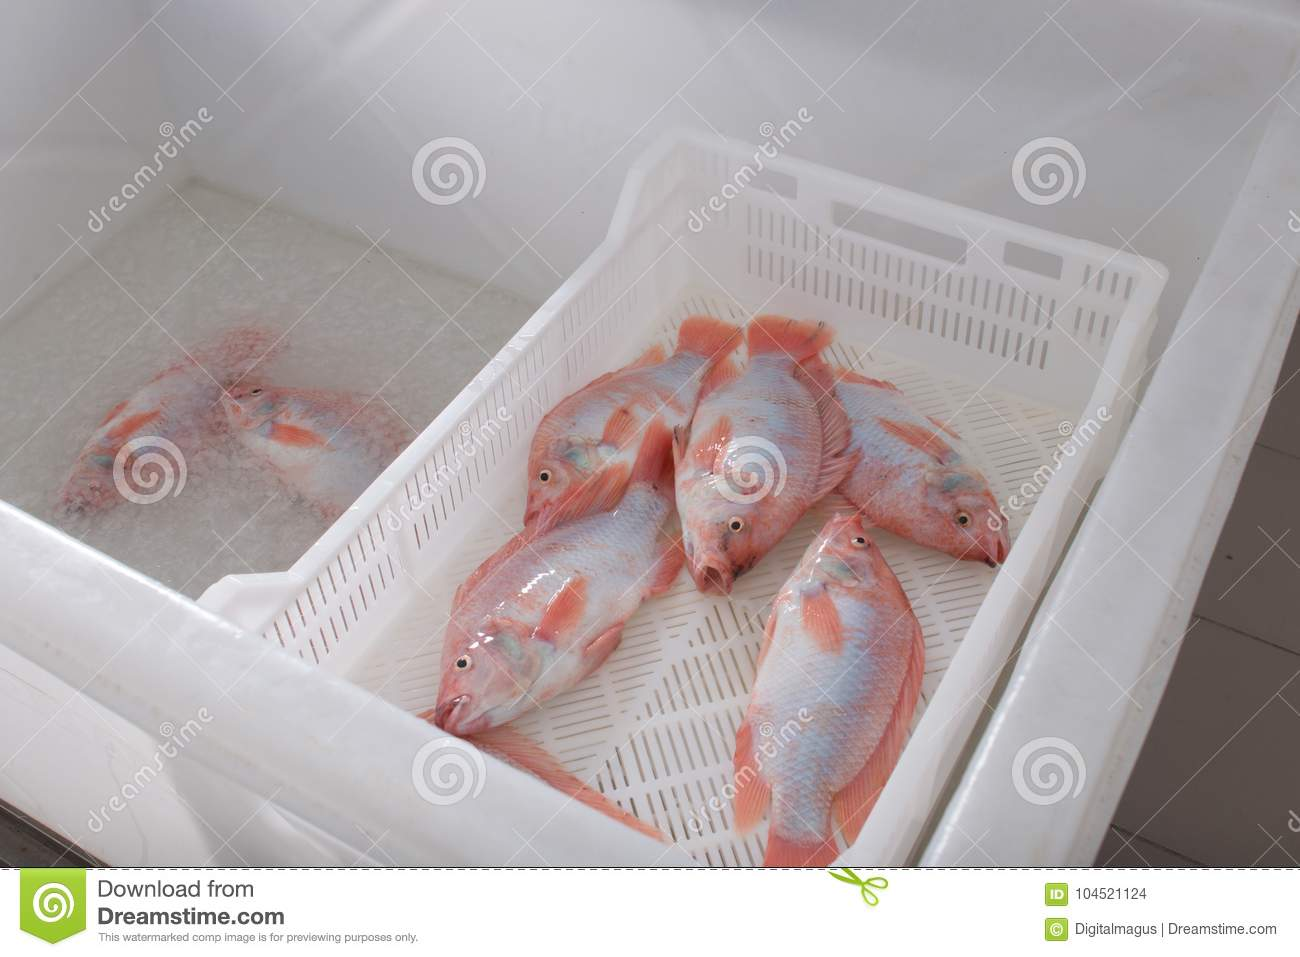 Freshly Caught Fish Tilapia In A Drawer, Cooling Fish In Ice